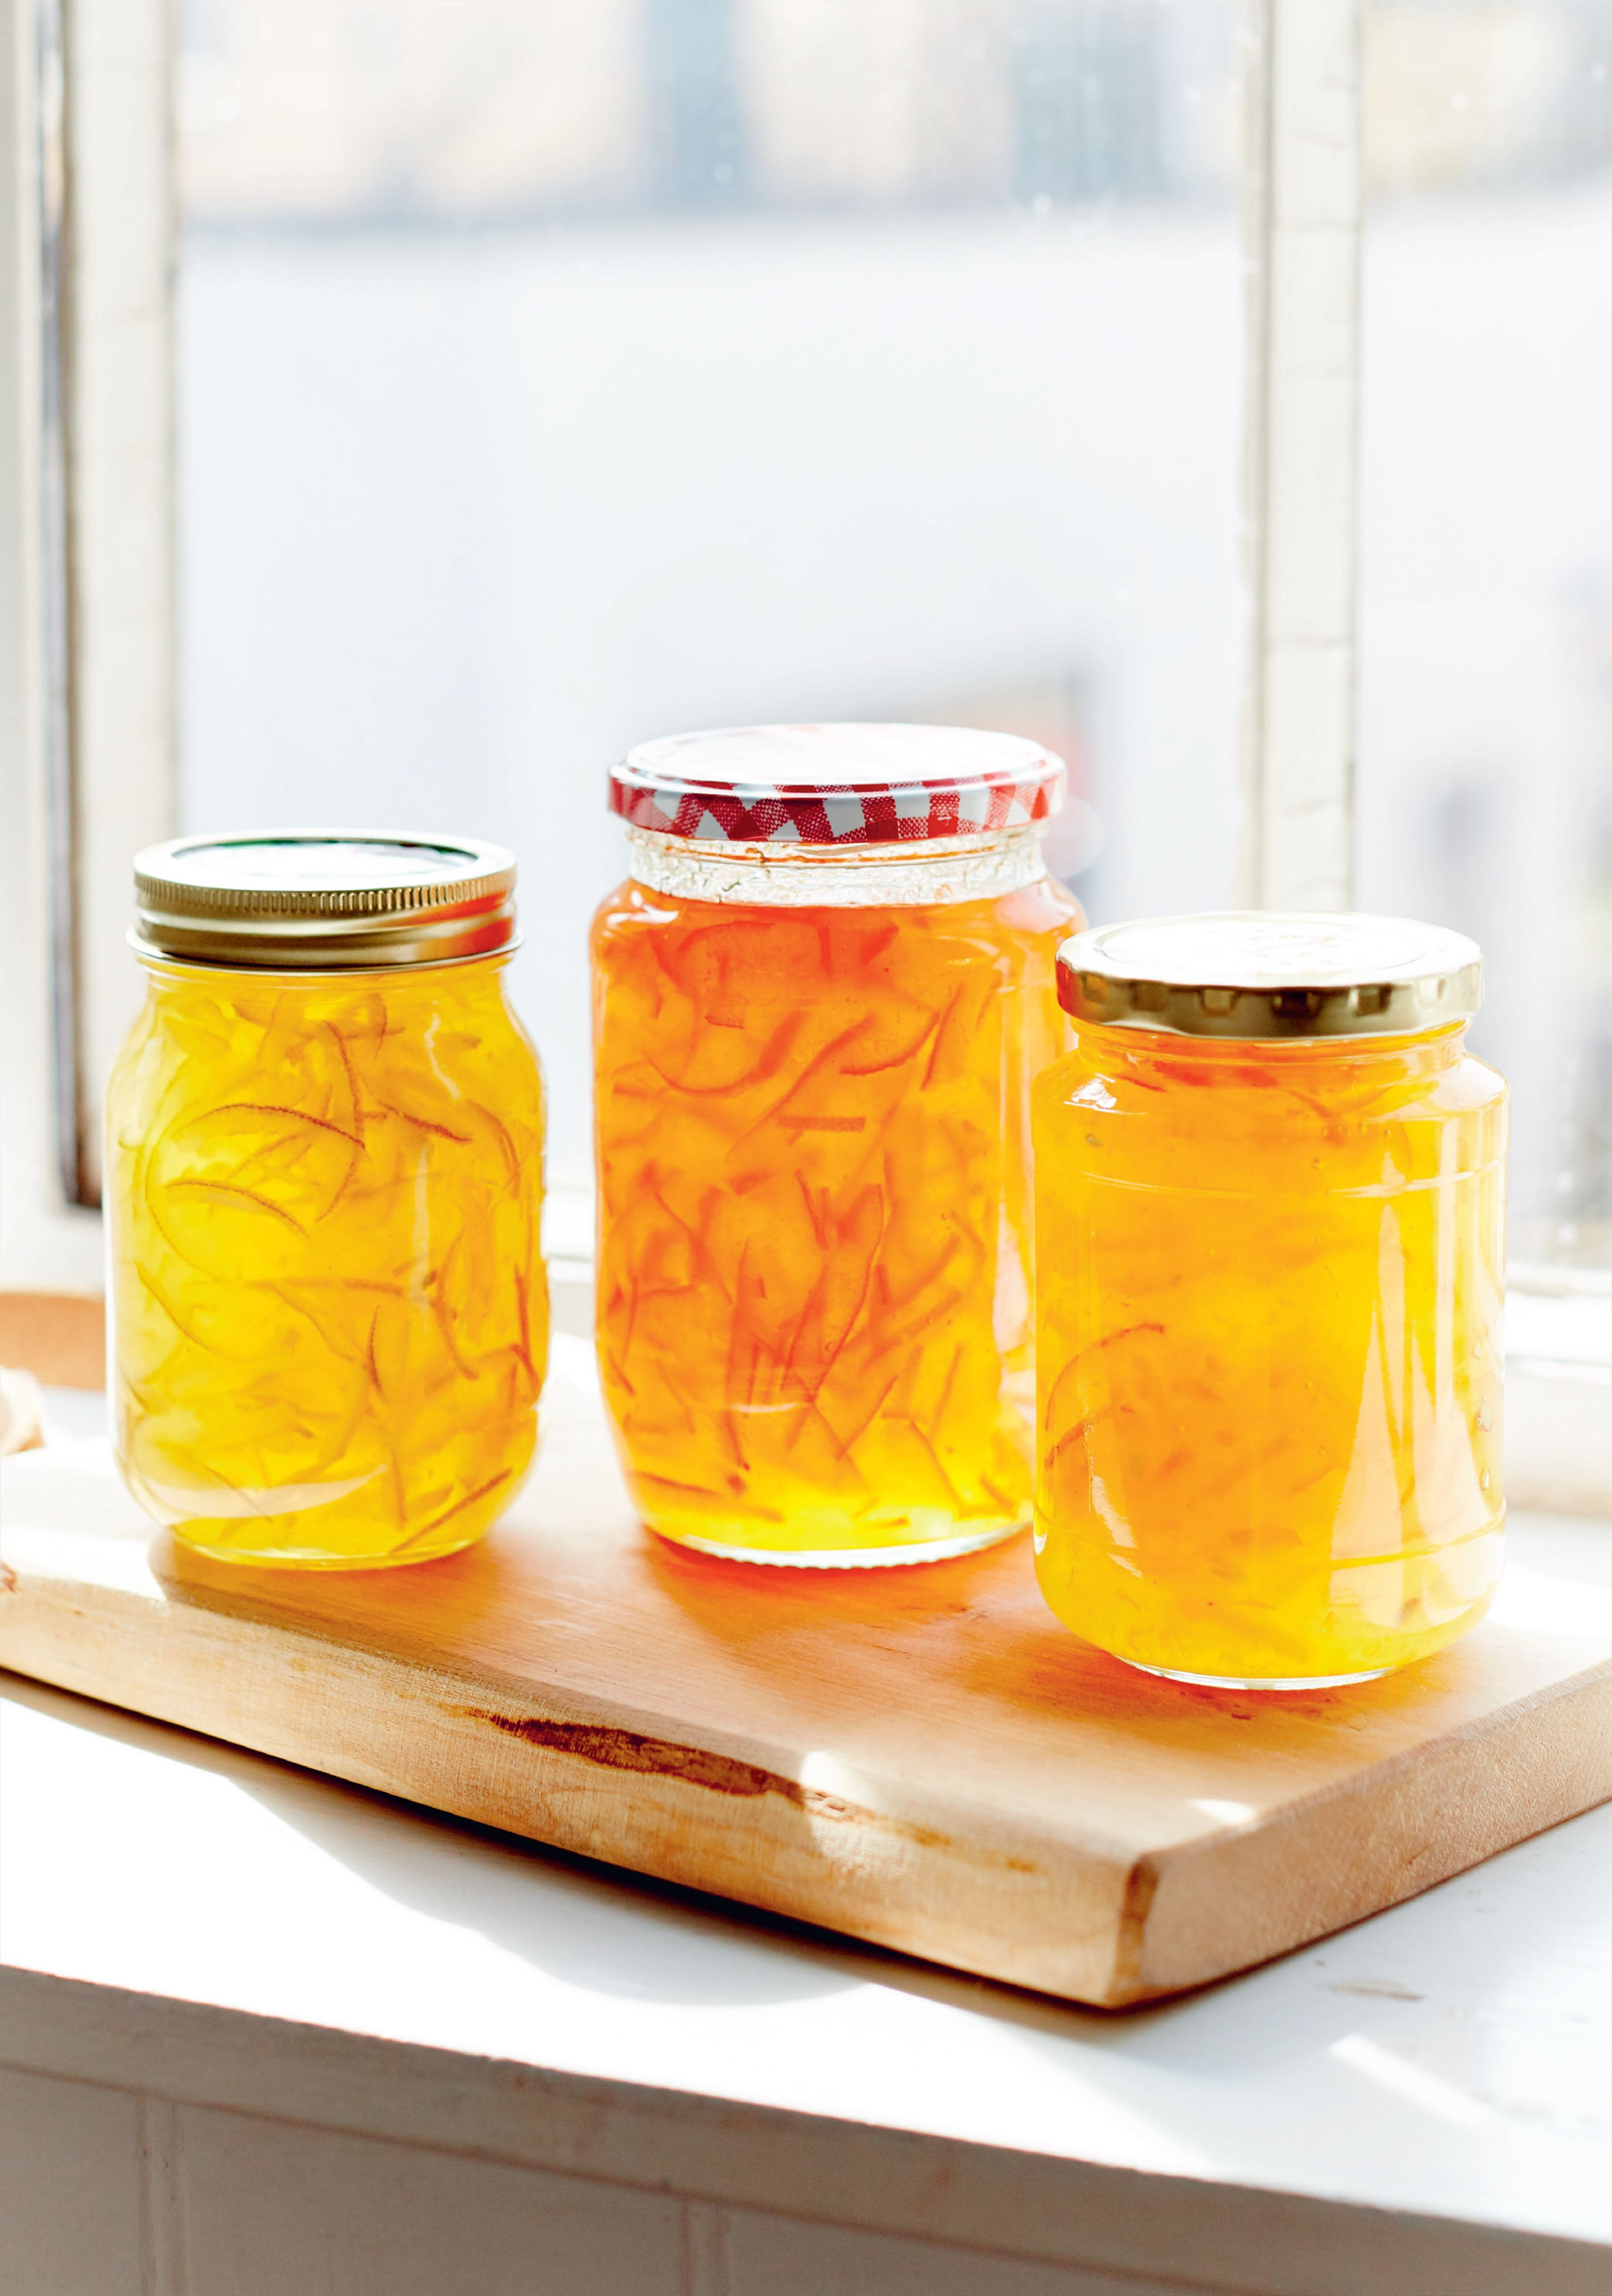 Lime and lemon marmalade